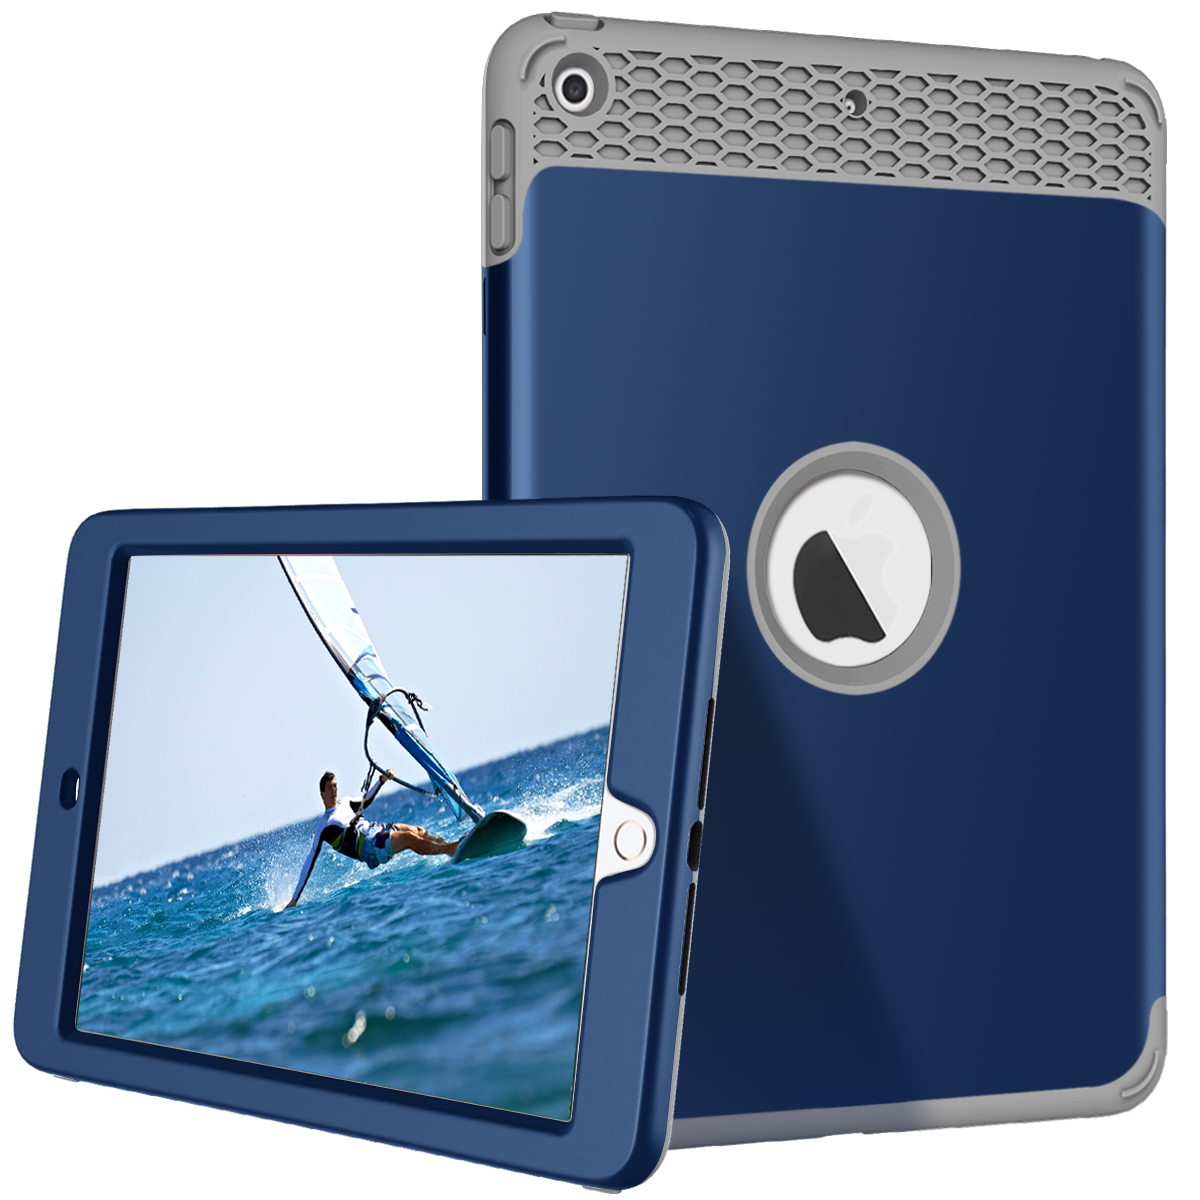 New iPad 9.7 2018/ 2017 Case, Allytech High-Impact Shock Absorbent Three Layer Armor Silicone+Hard PC Bumper Protective Case for iPad 9.7 inch 5th/6th Generation (A1822 A1823 A1893 A1954), Darkblue